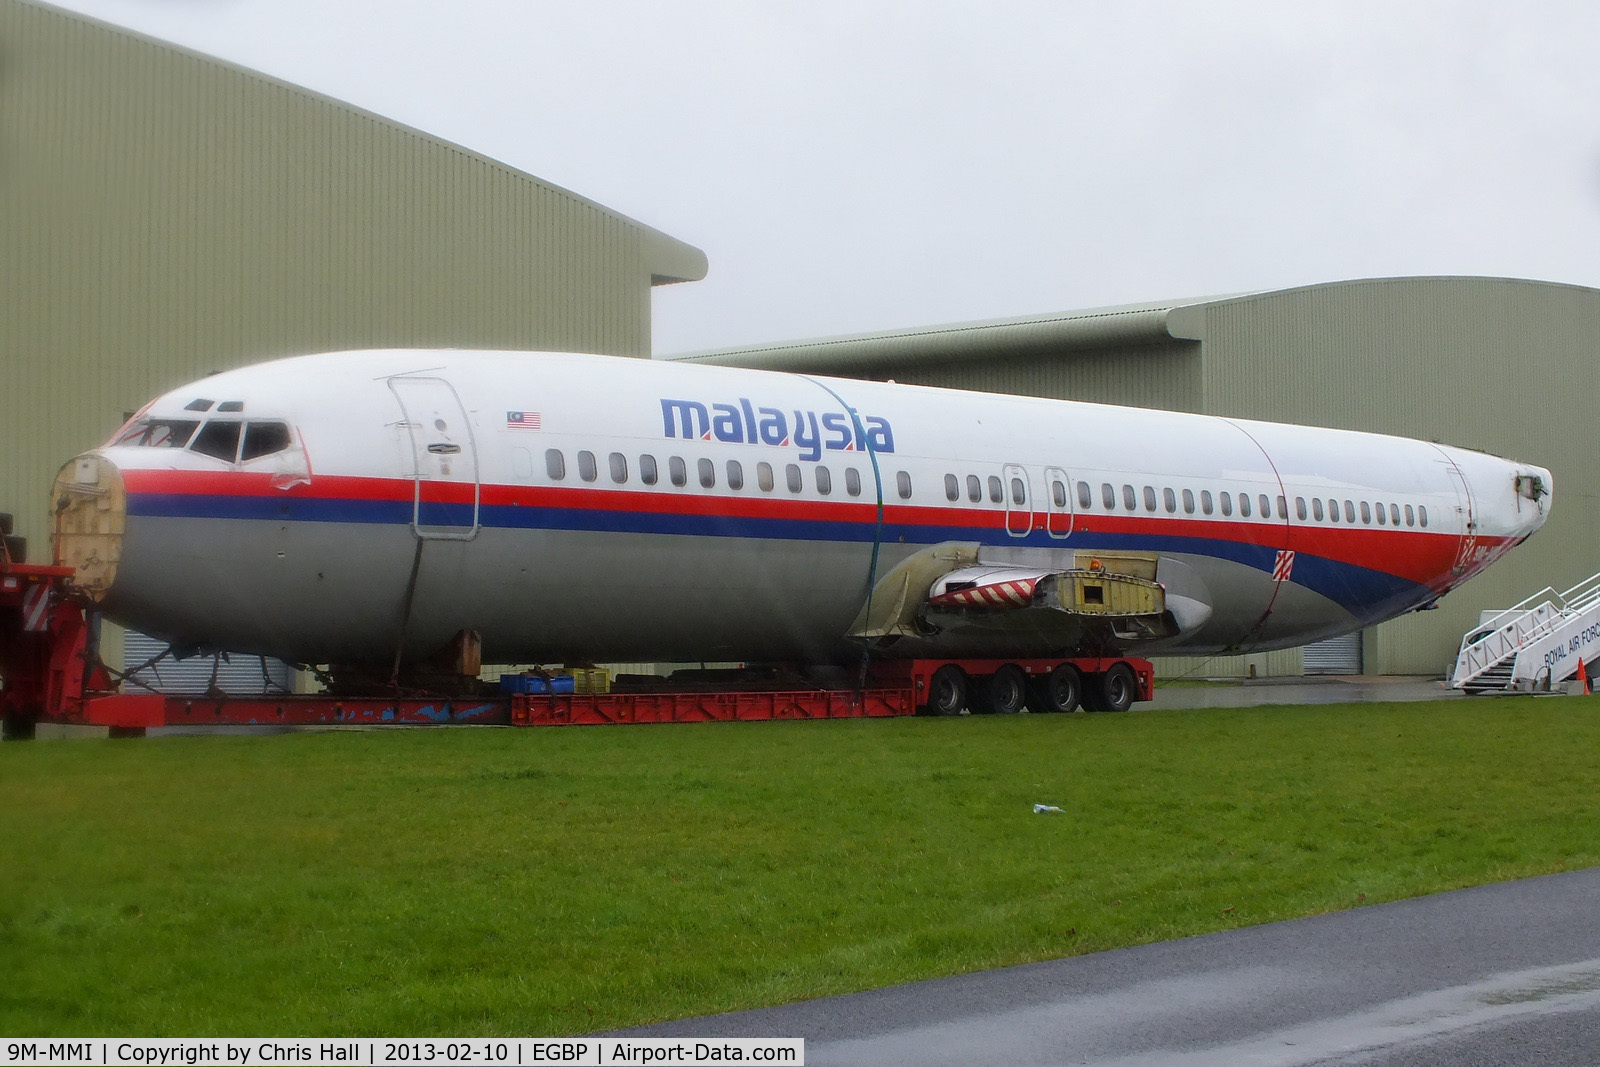 9M-MMI, 1992 Boeing 737-4H6 C/N 27096, ex Malaysia Airlines B737 fuselage on a lowloader at Kemble